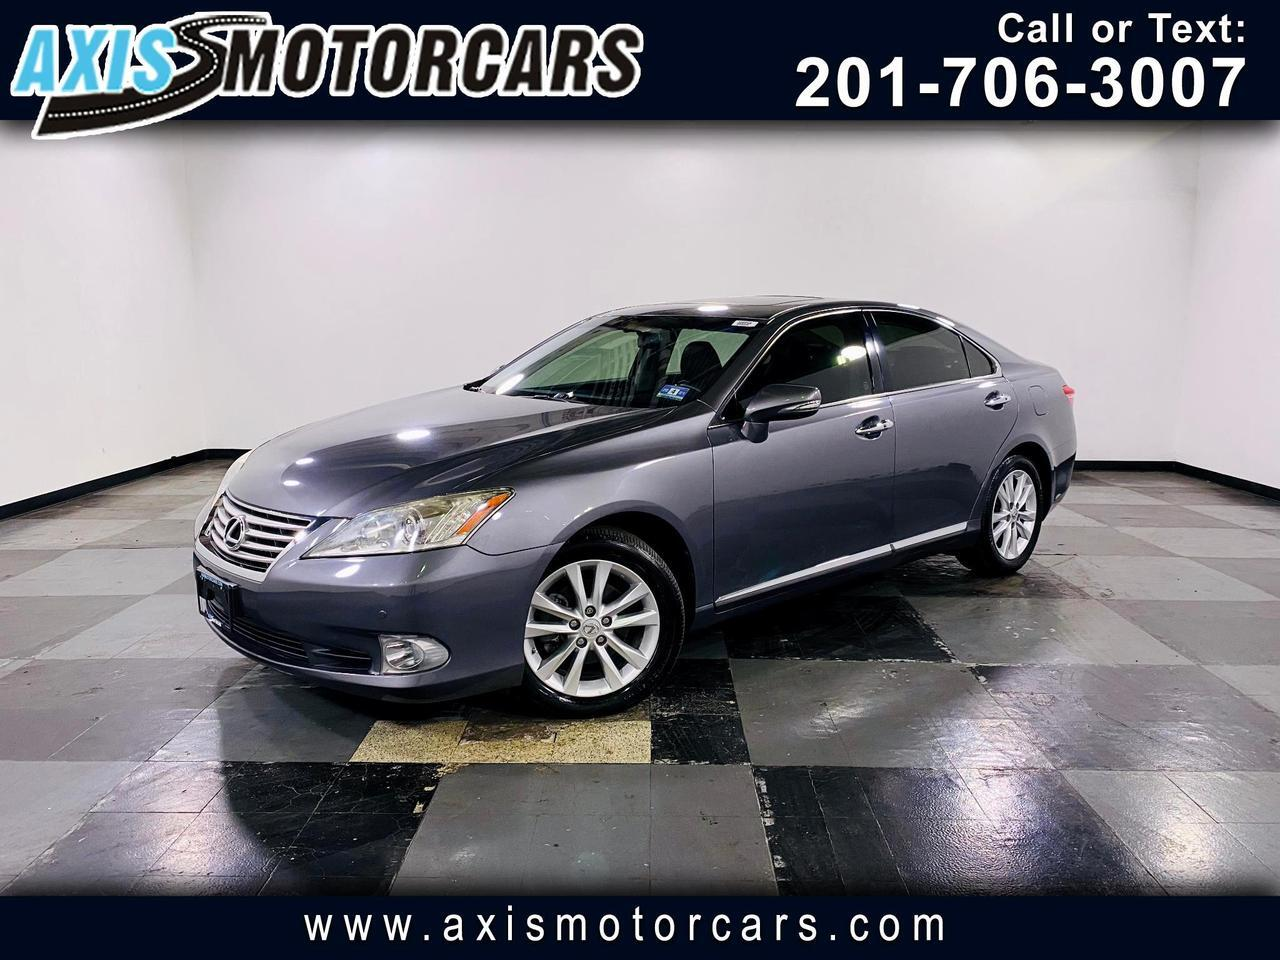 2012 Lexus ES 350 4dr w/Sunroof Jersey City NJ